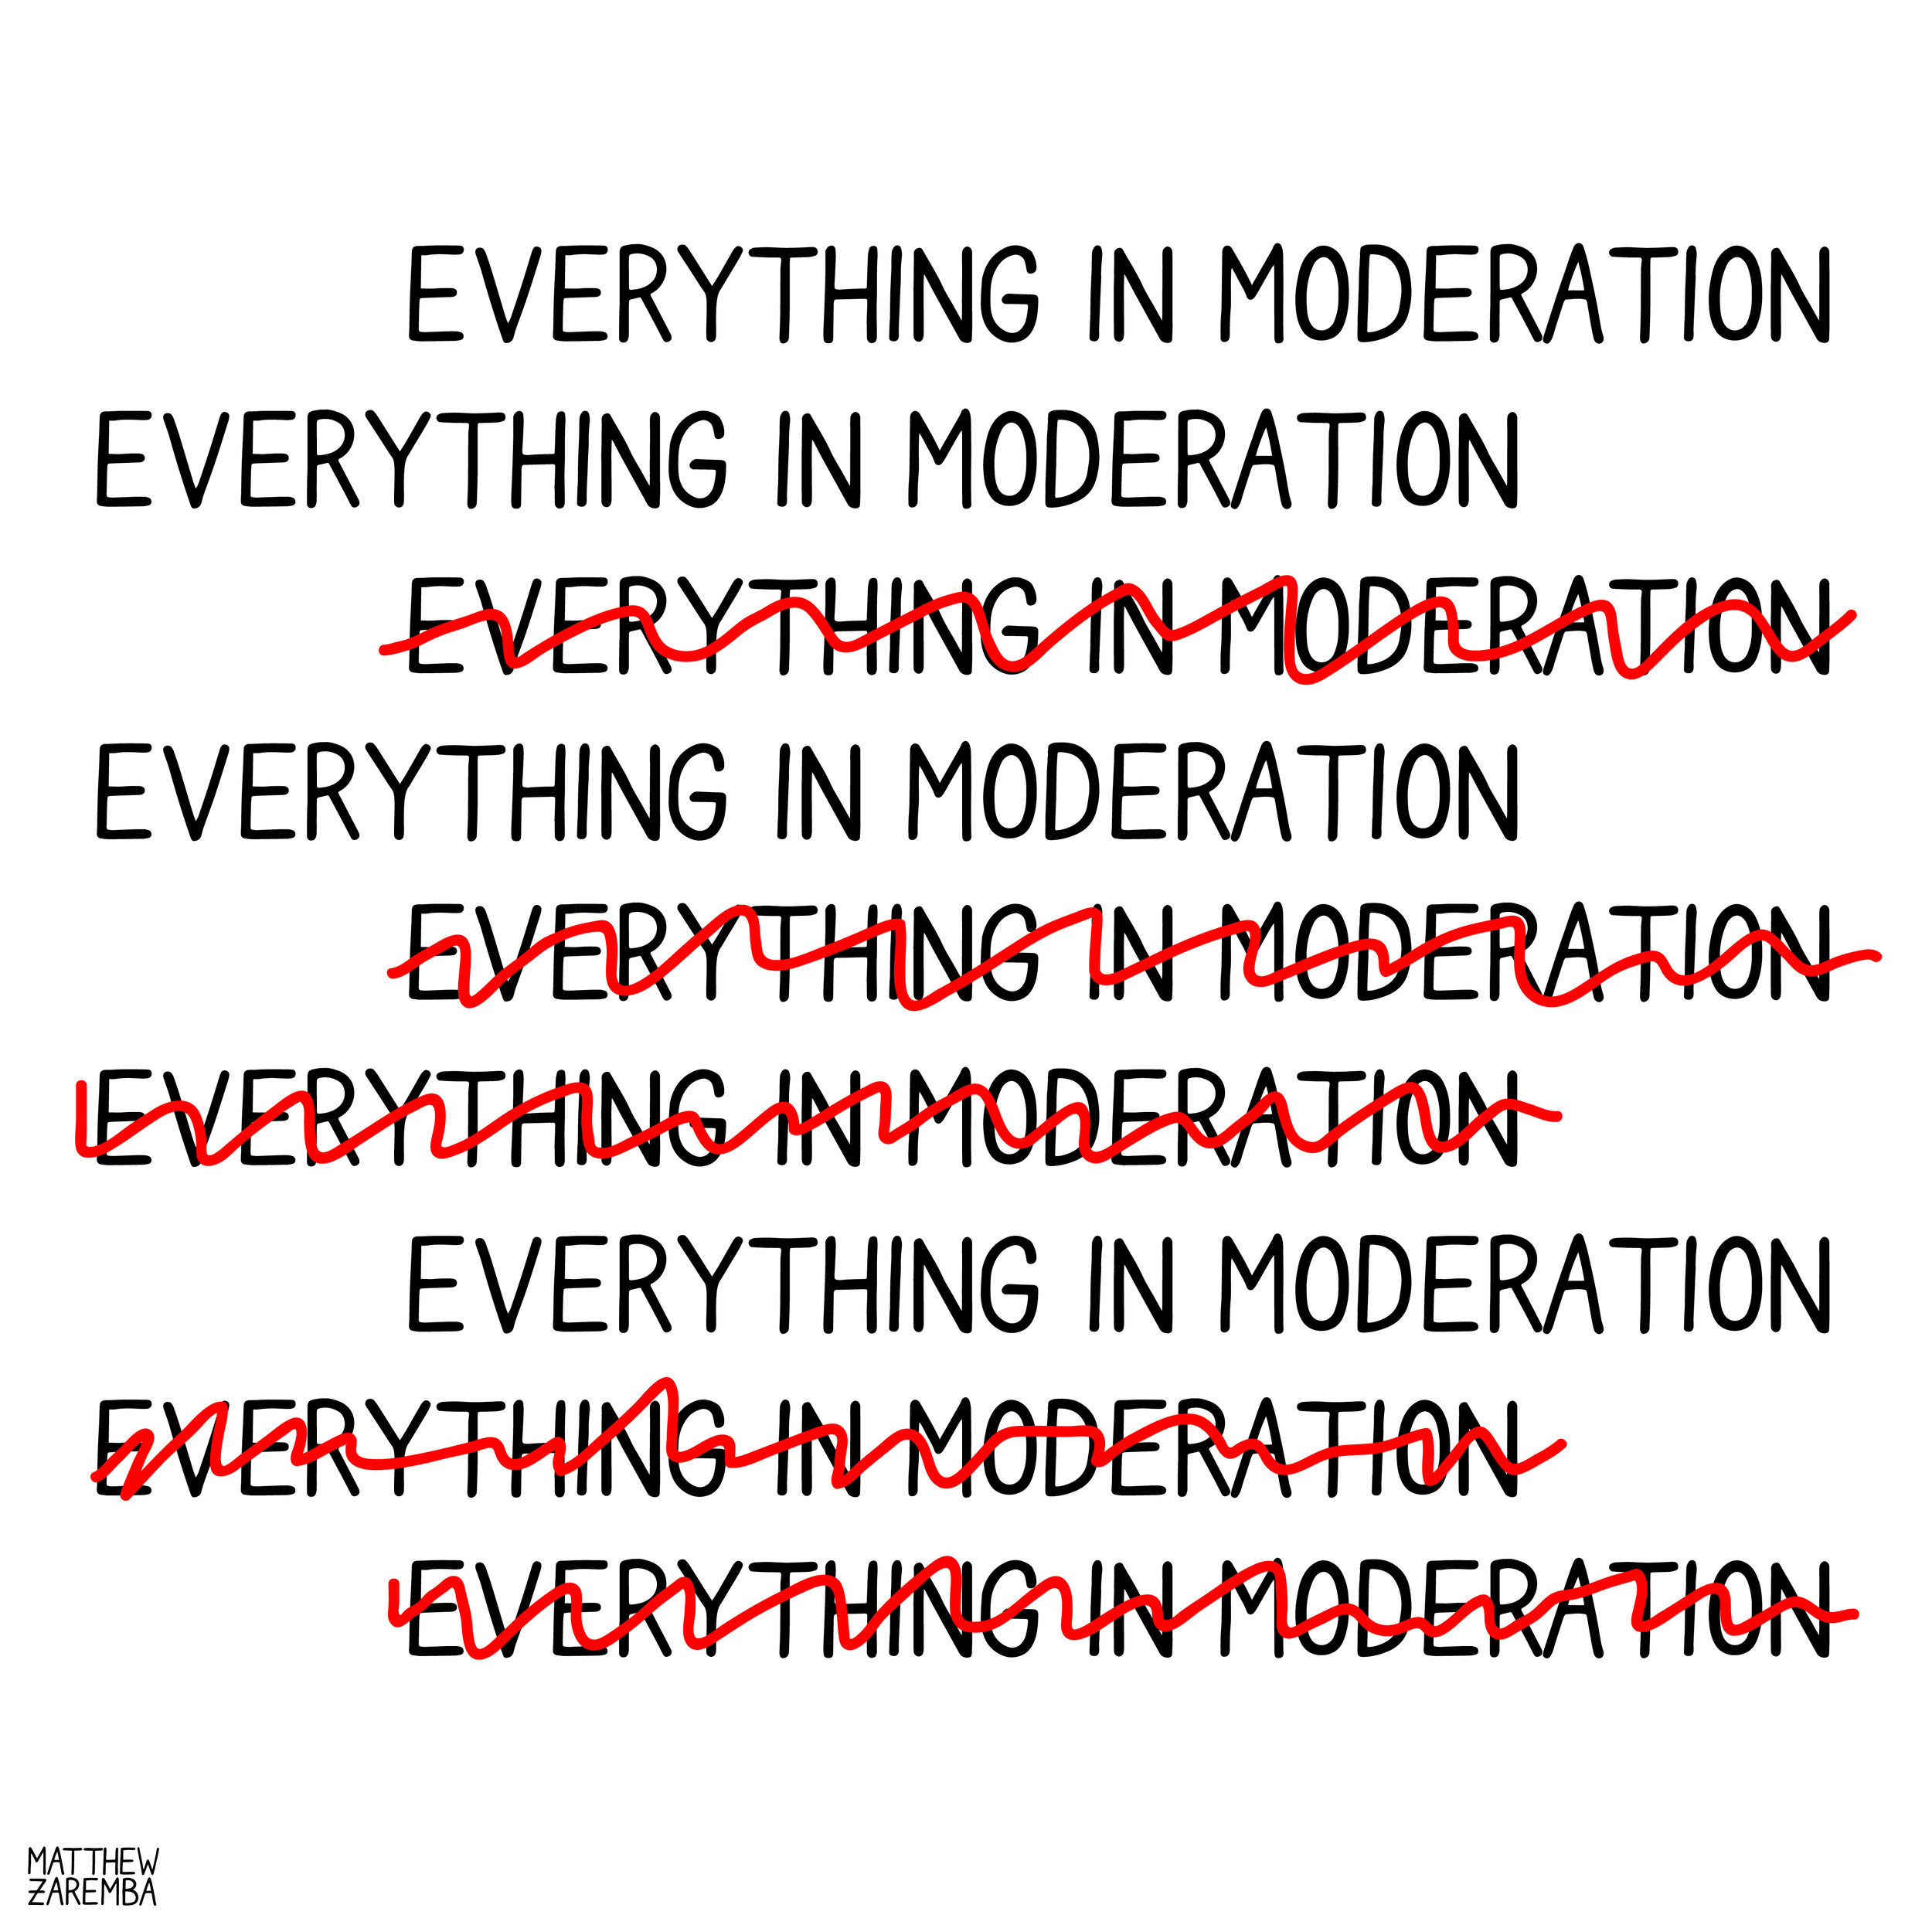 everythinginmoderation-01.jpg